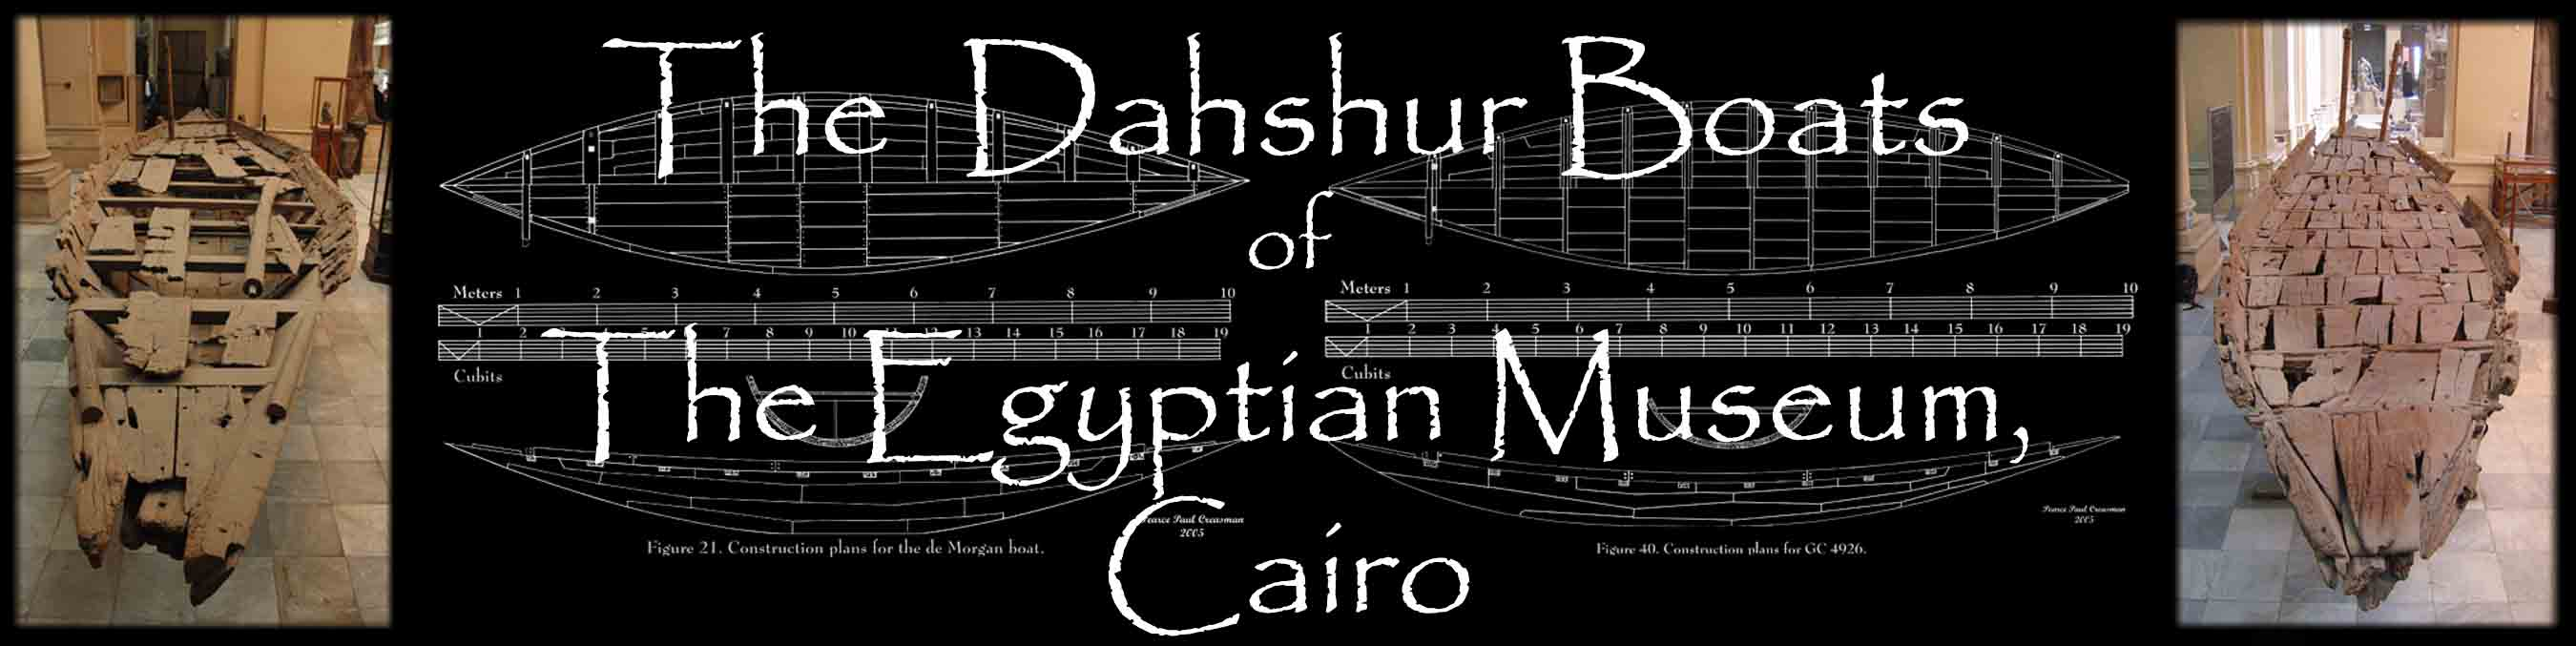 To Dahshur Boats Homepage...